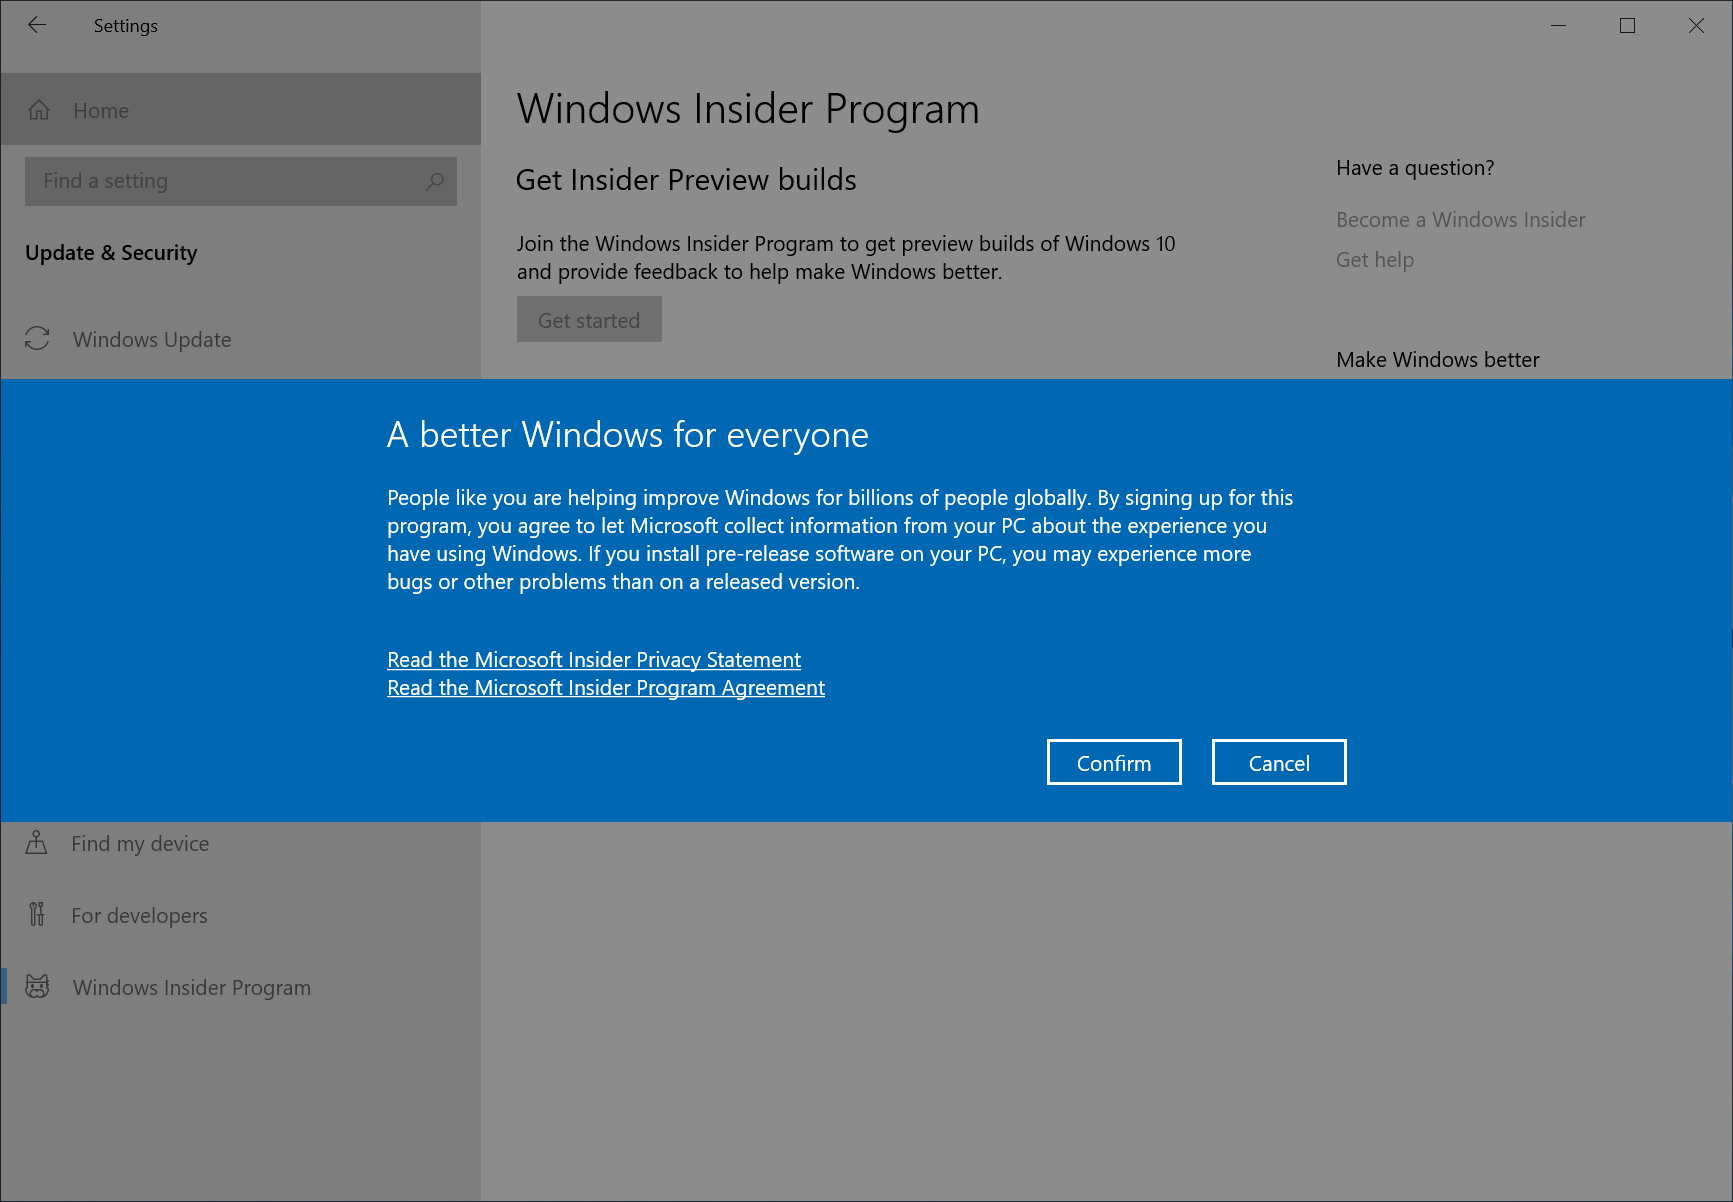 How to get the Windows 10 November 2019 Update 8cc54b9bc368b29961a9dcf6641c0a68.png